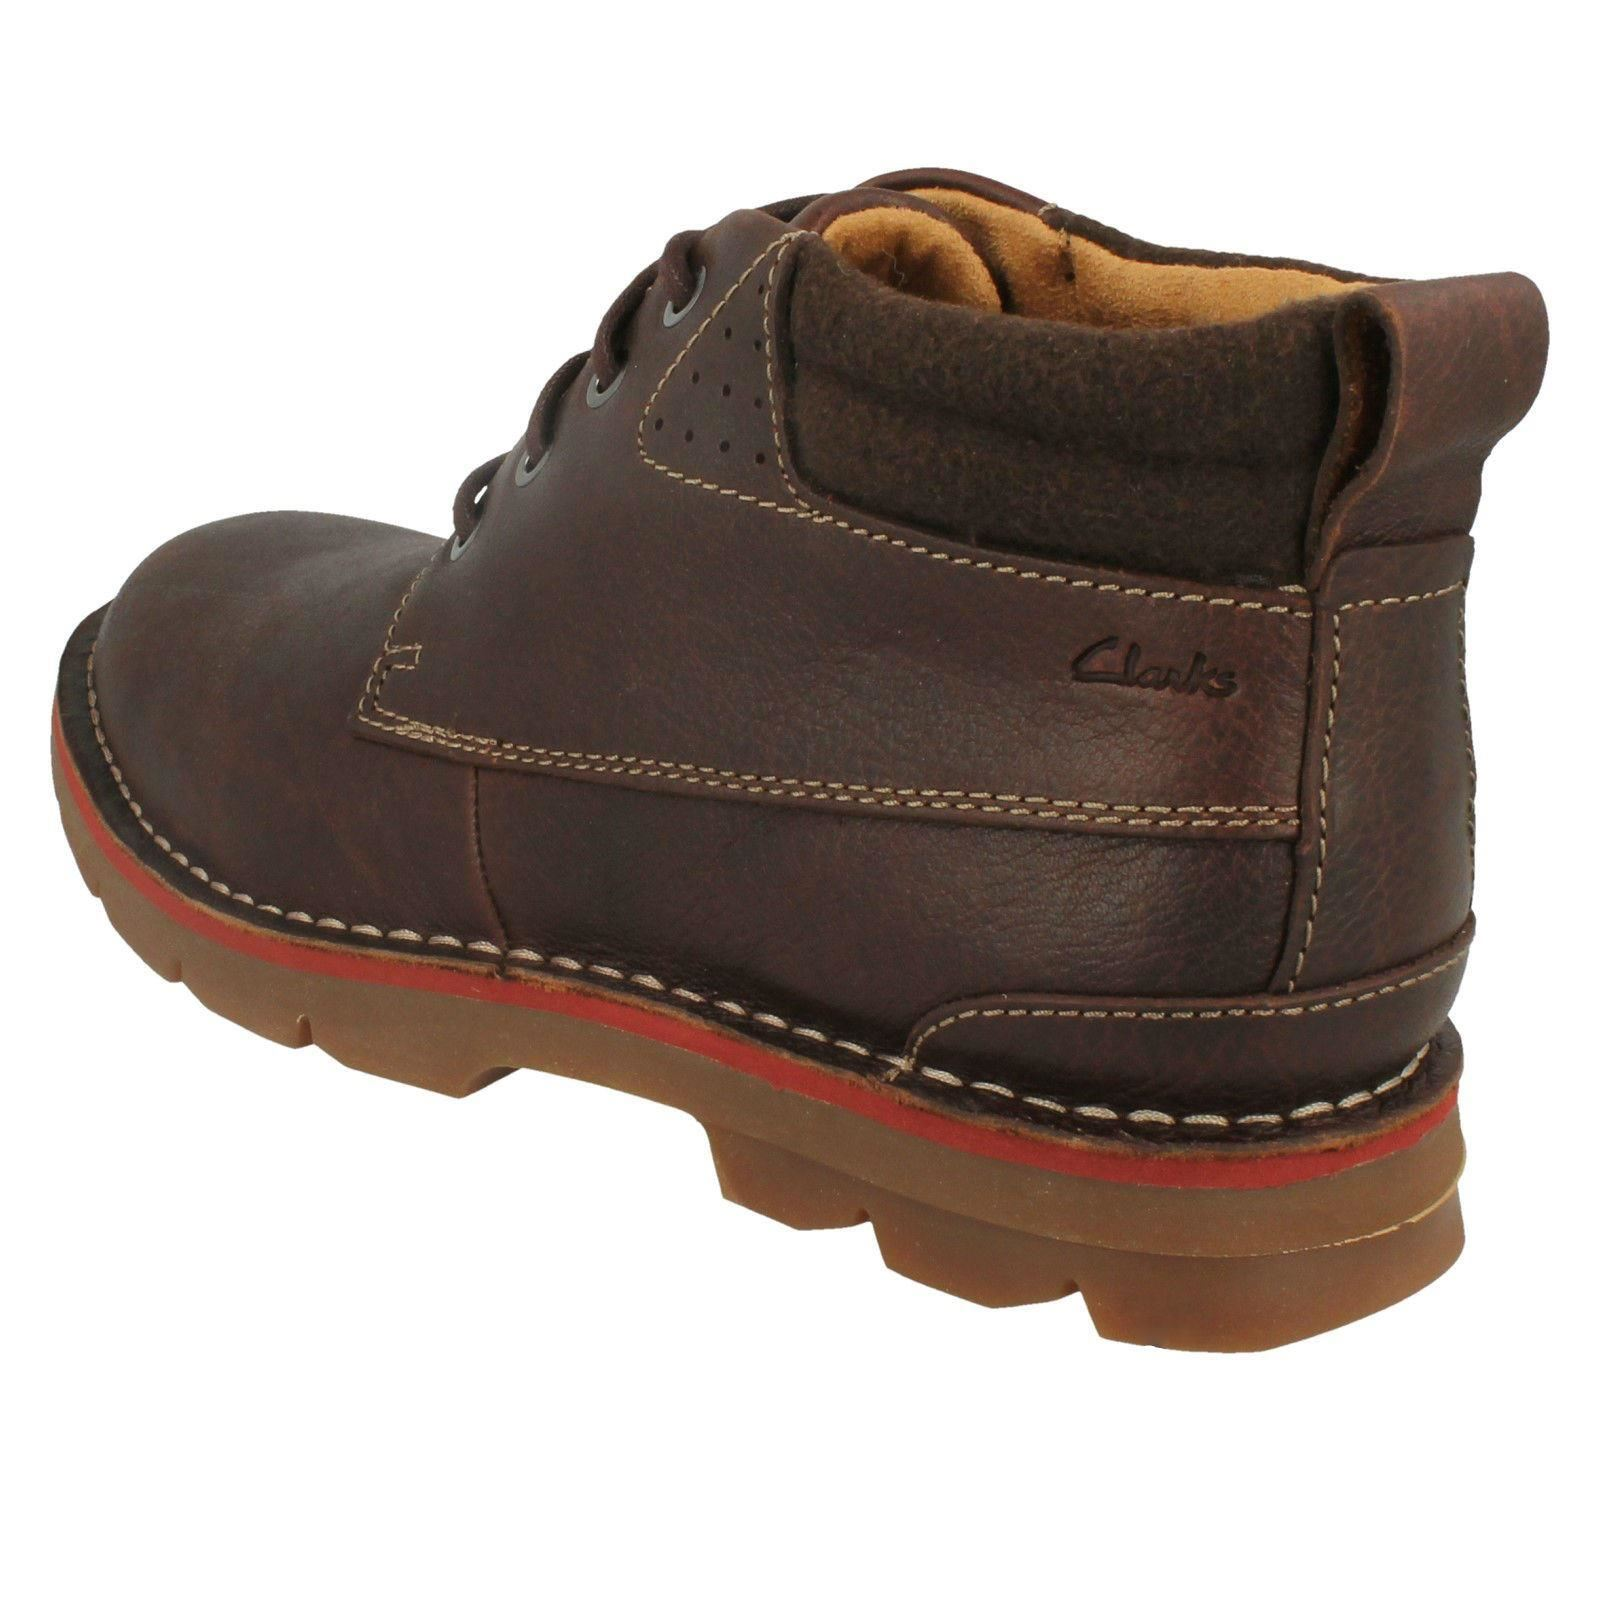 Mens-Clarks-Warm-Lined-Casual-Boots-039-Varick-Heal-039 thumbnail 8